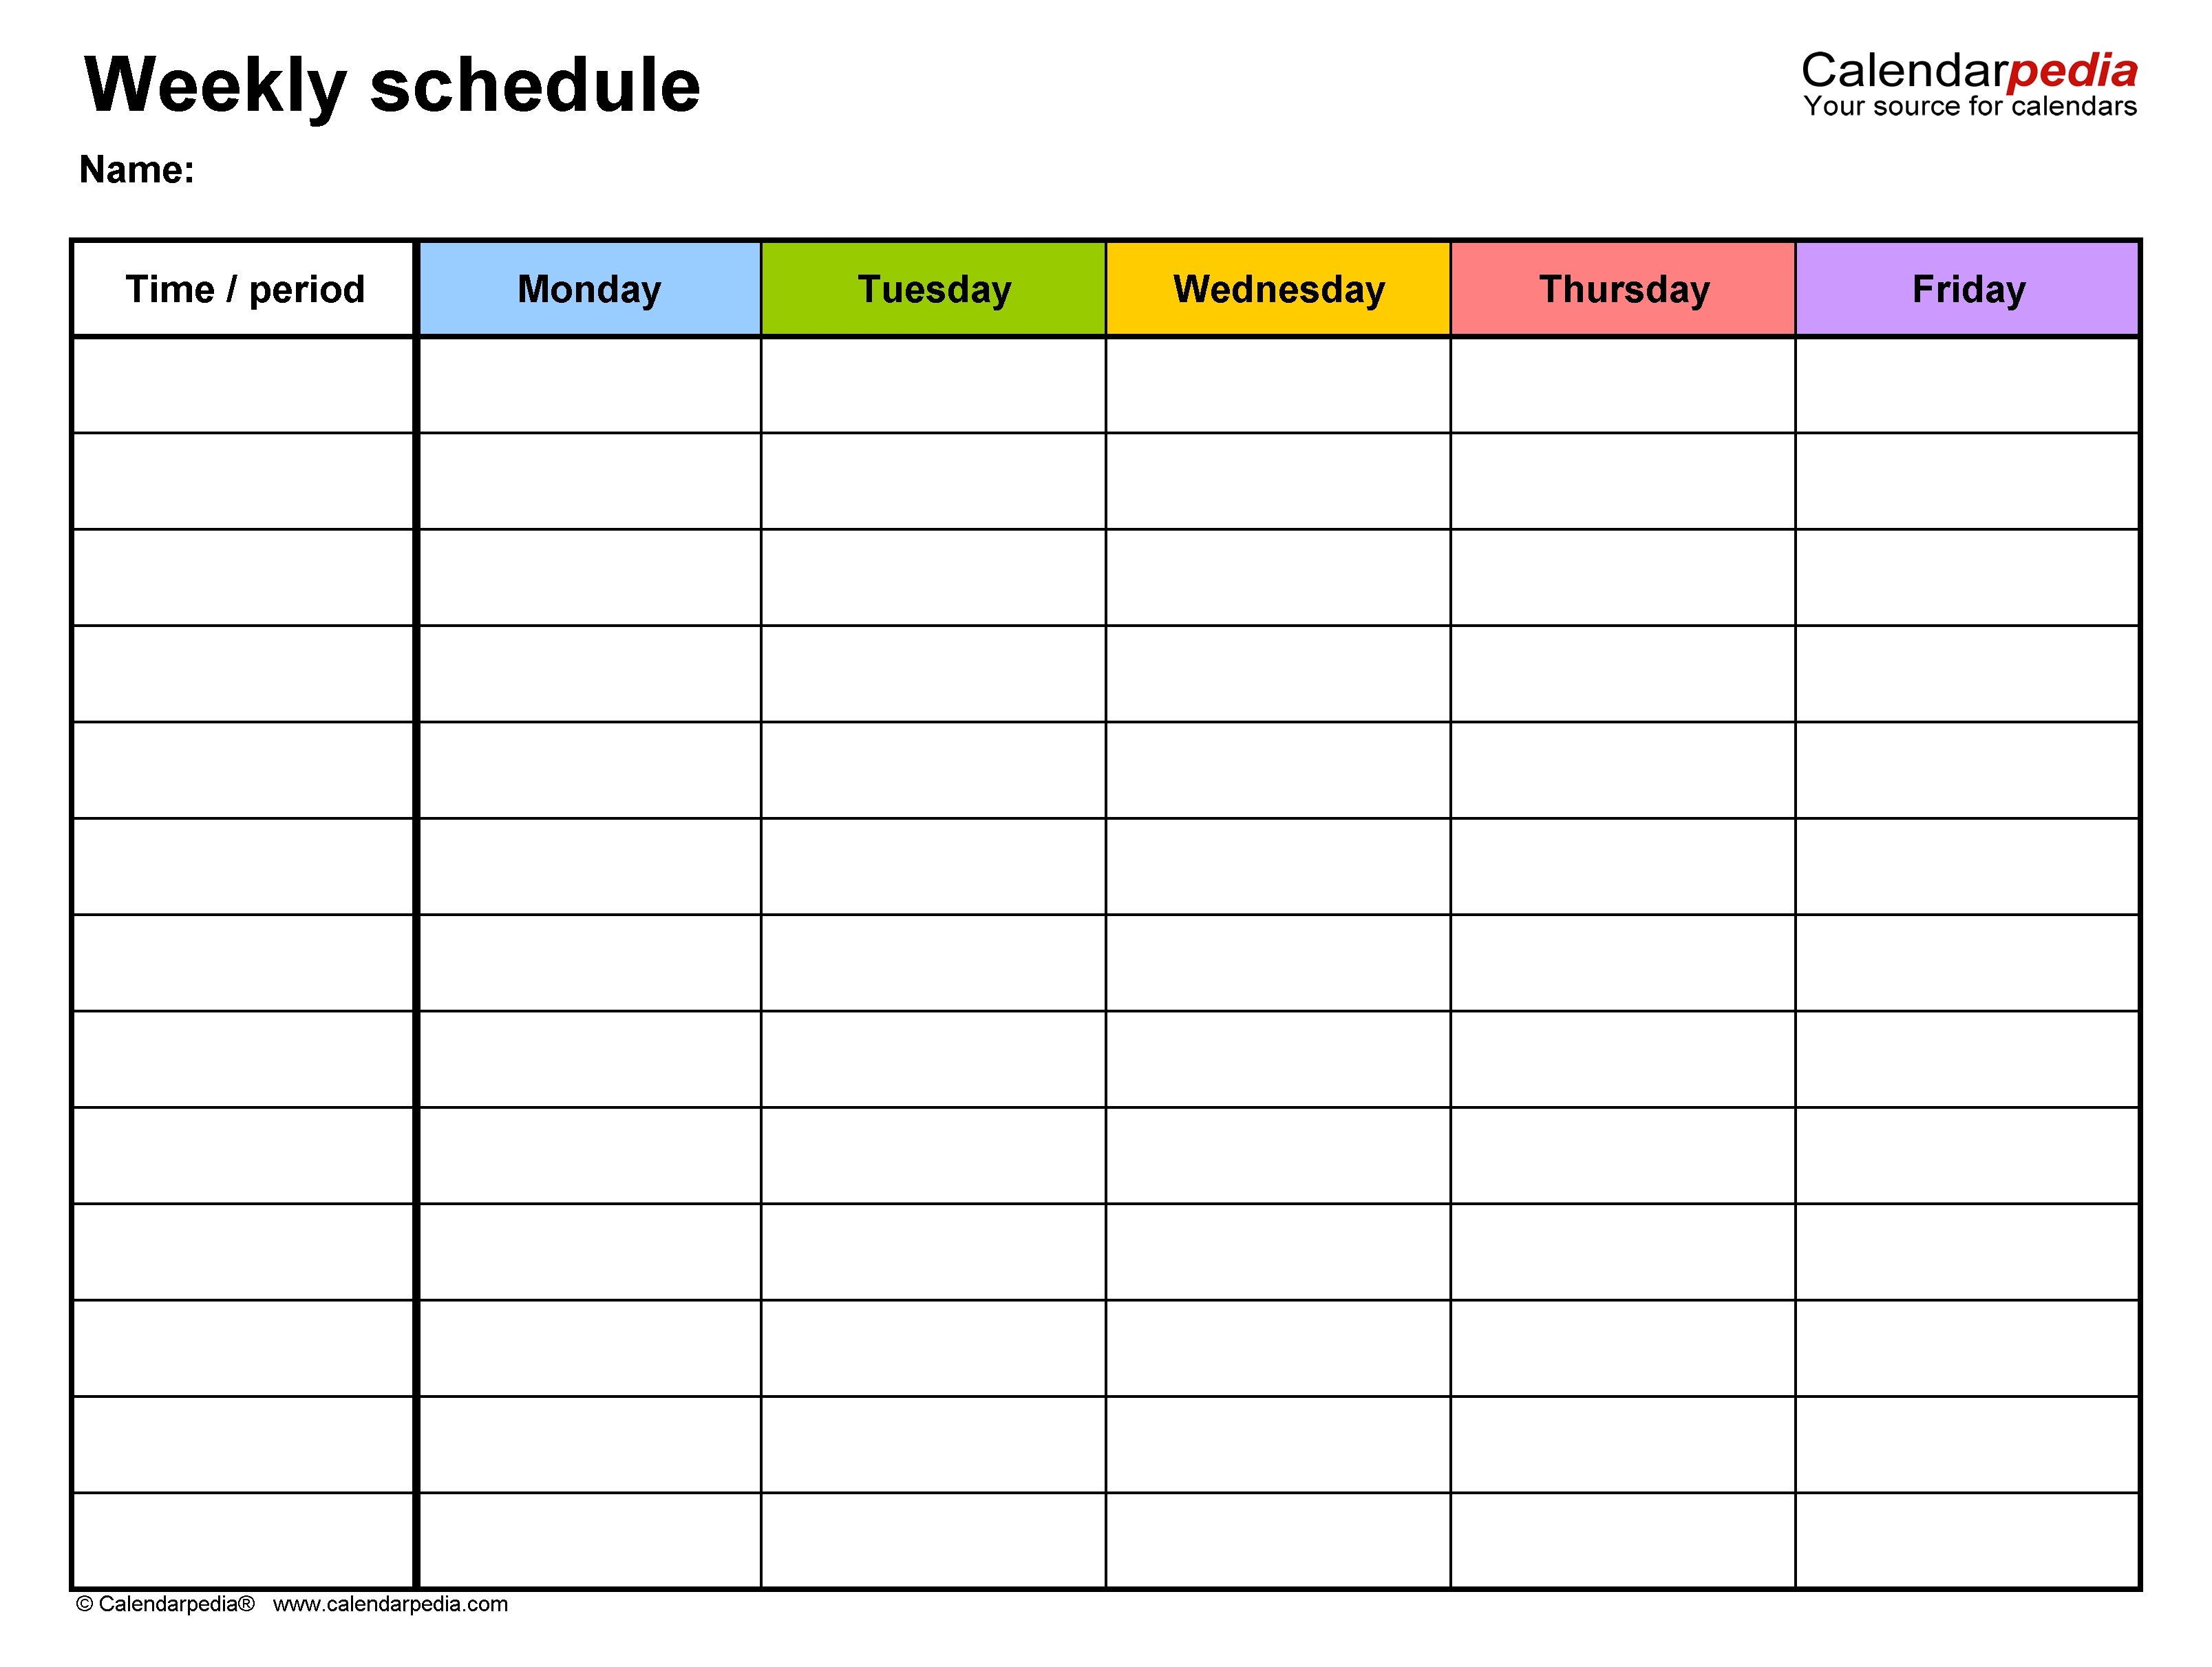 Free Weekly Schedules For Excel - 18 Templates 1 Week Calendar Template Excel